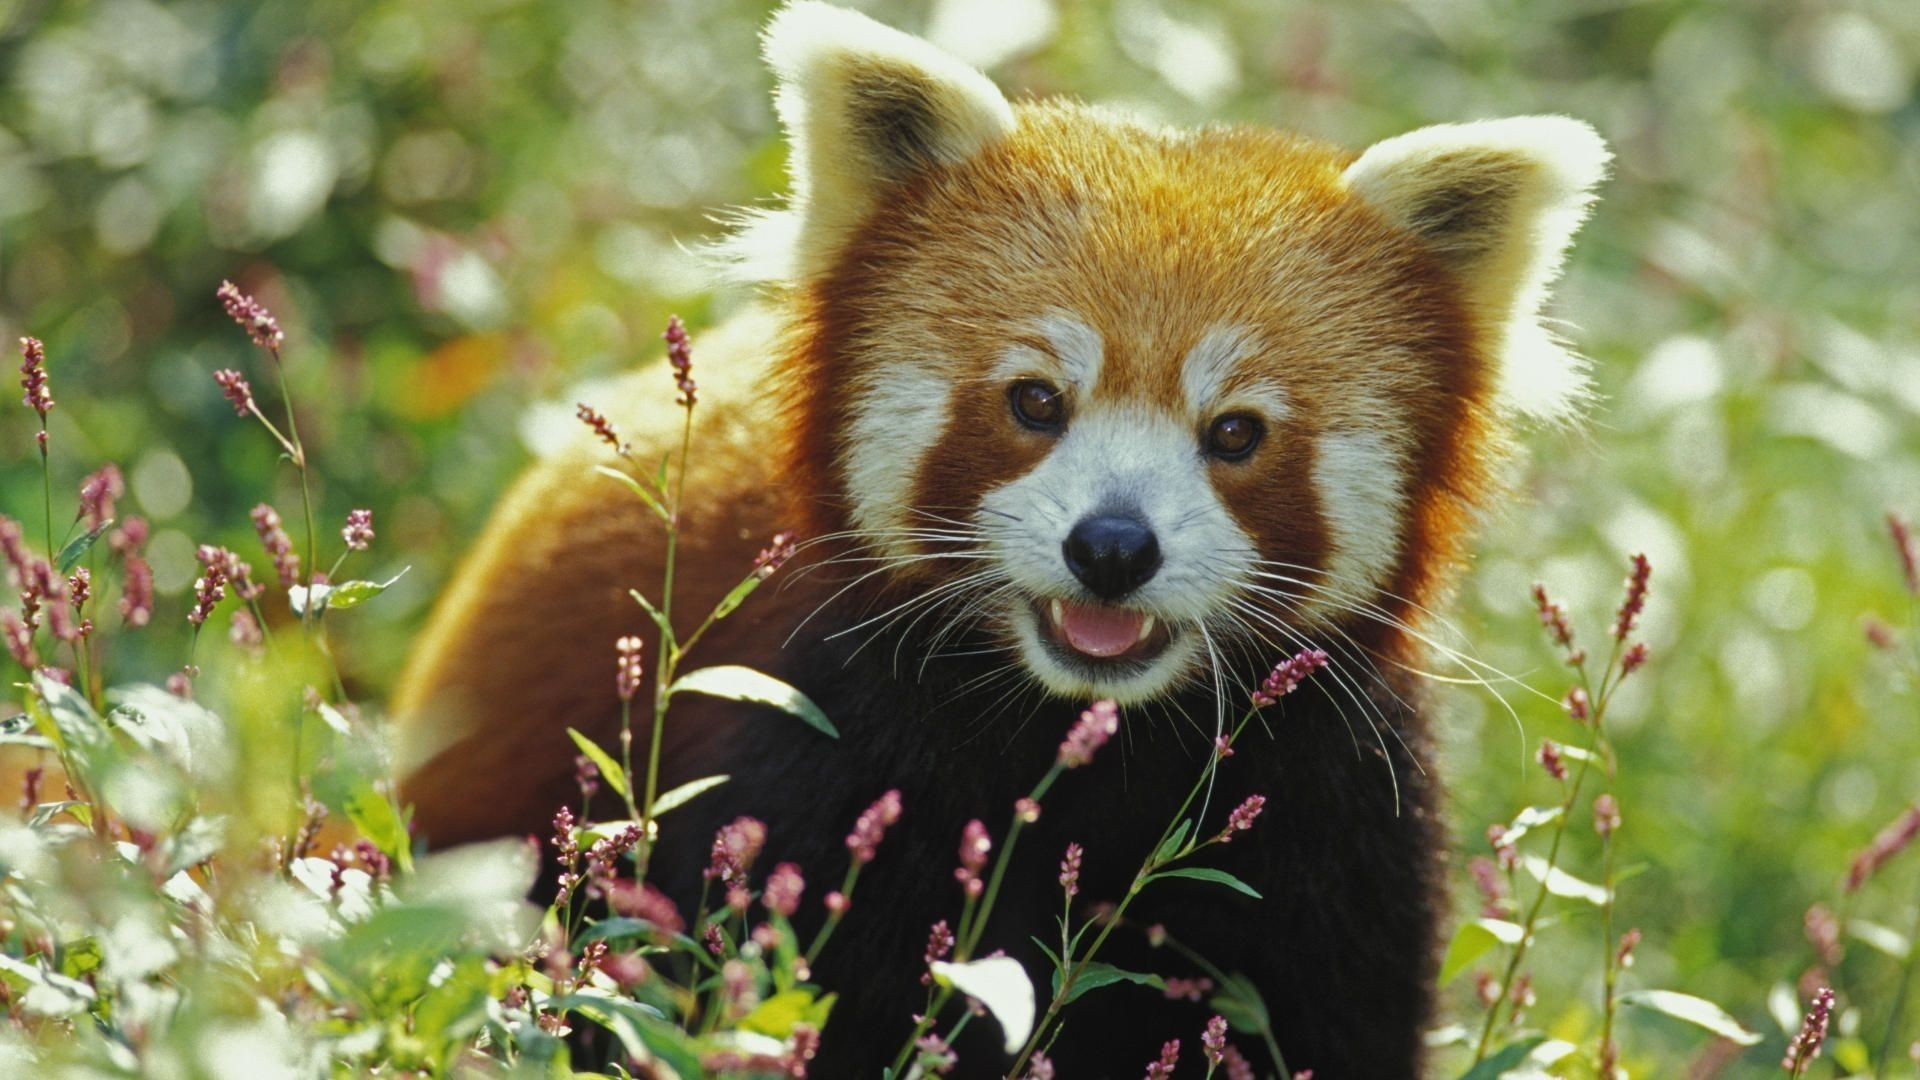 Cute Baby Red Pandas Wallpapers - Top Free Cute Baby Red ...